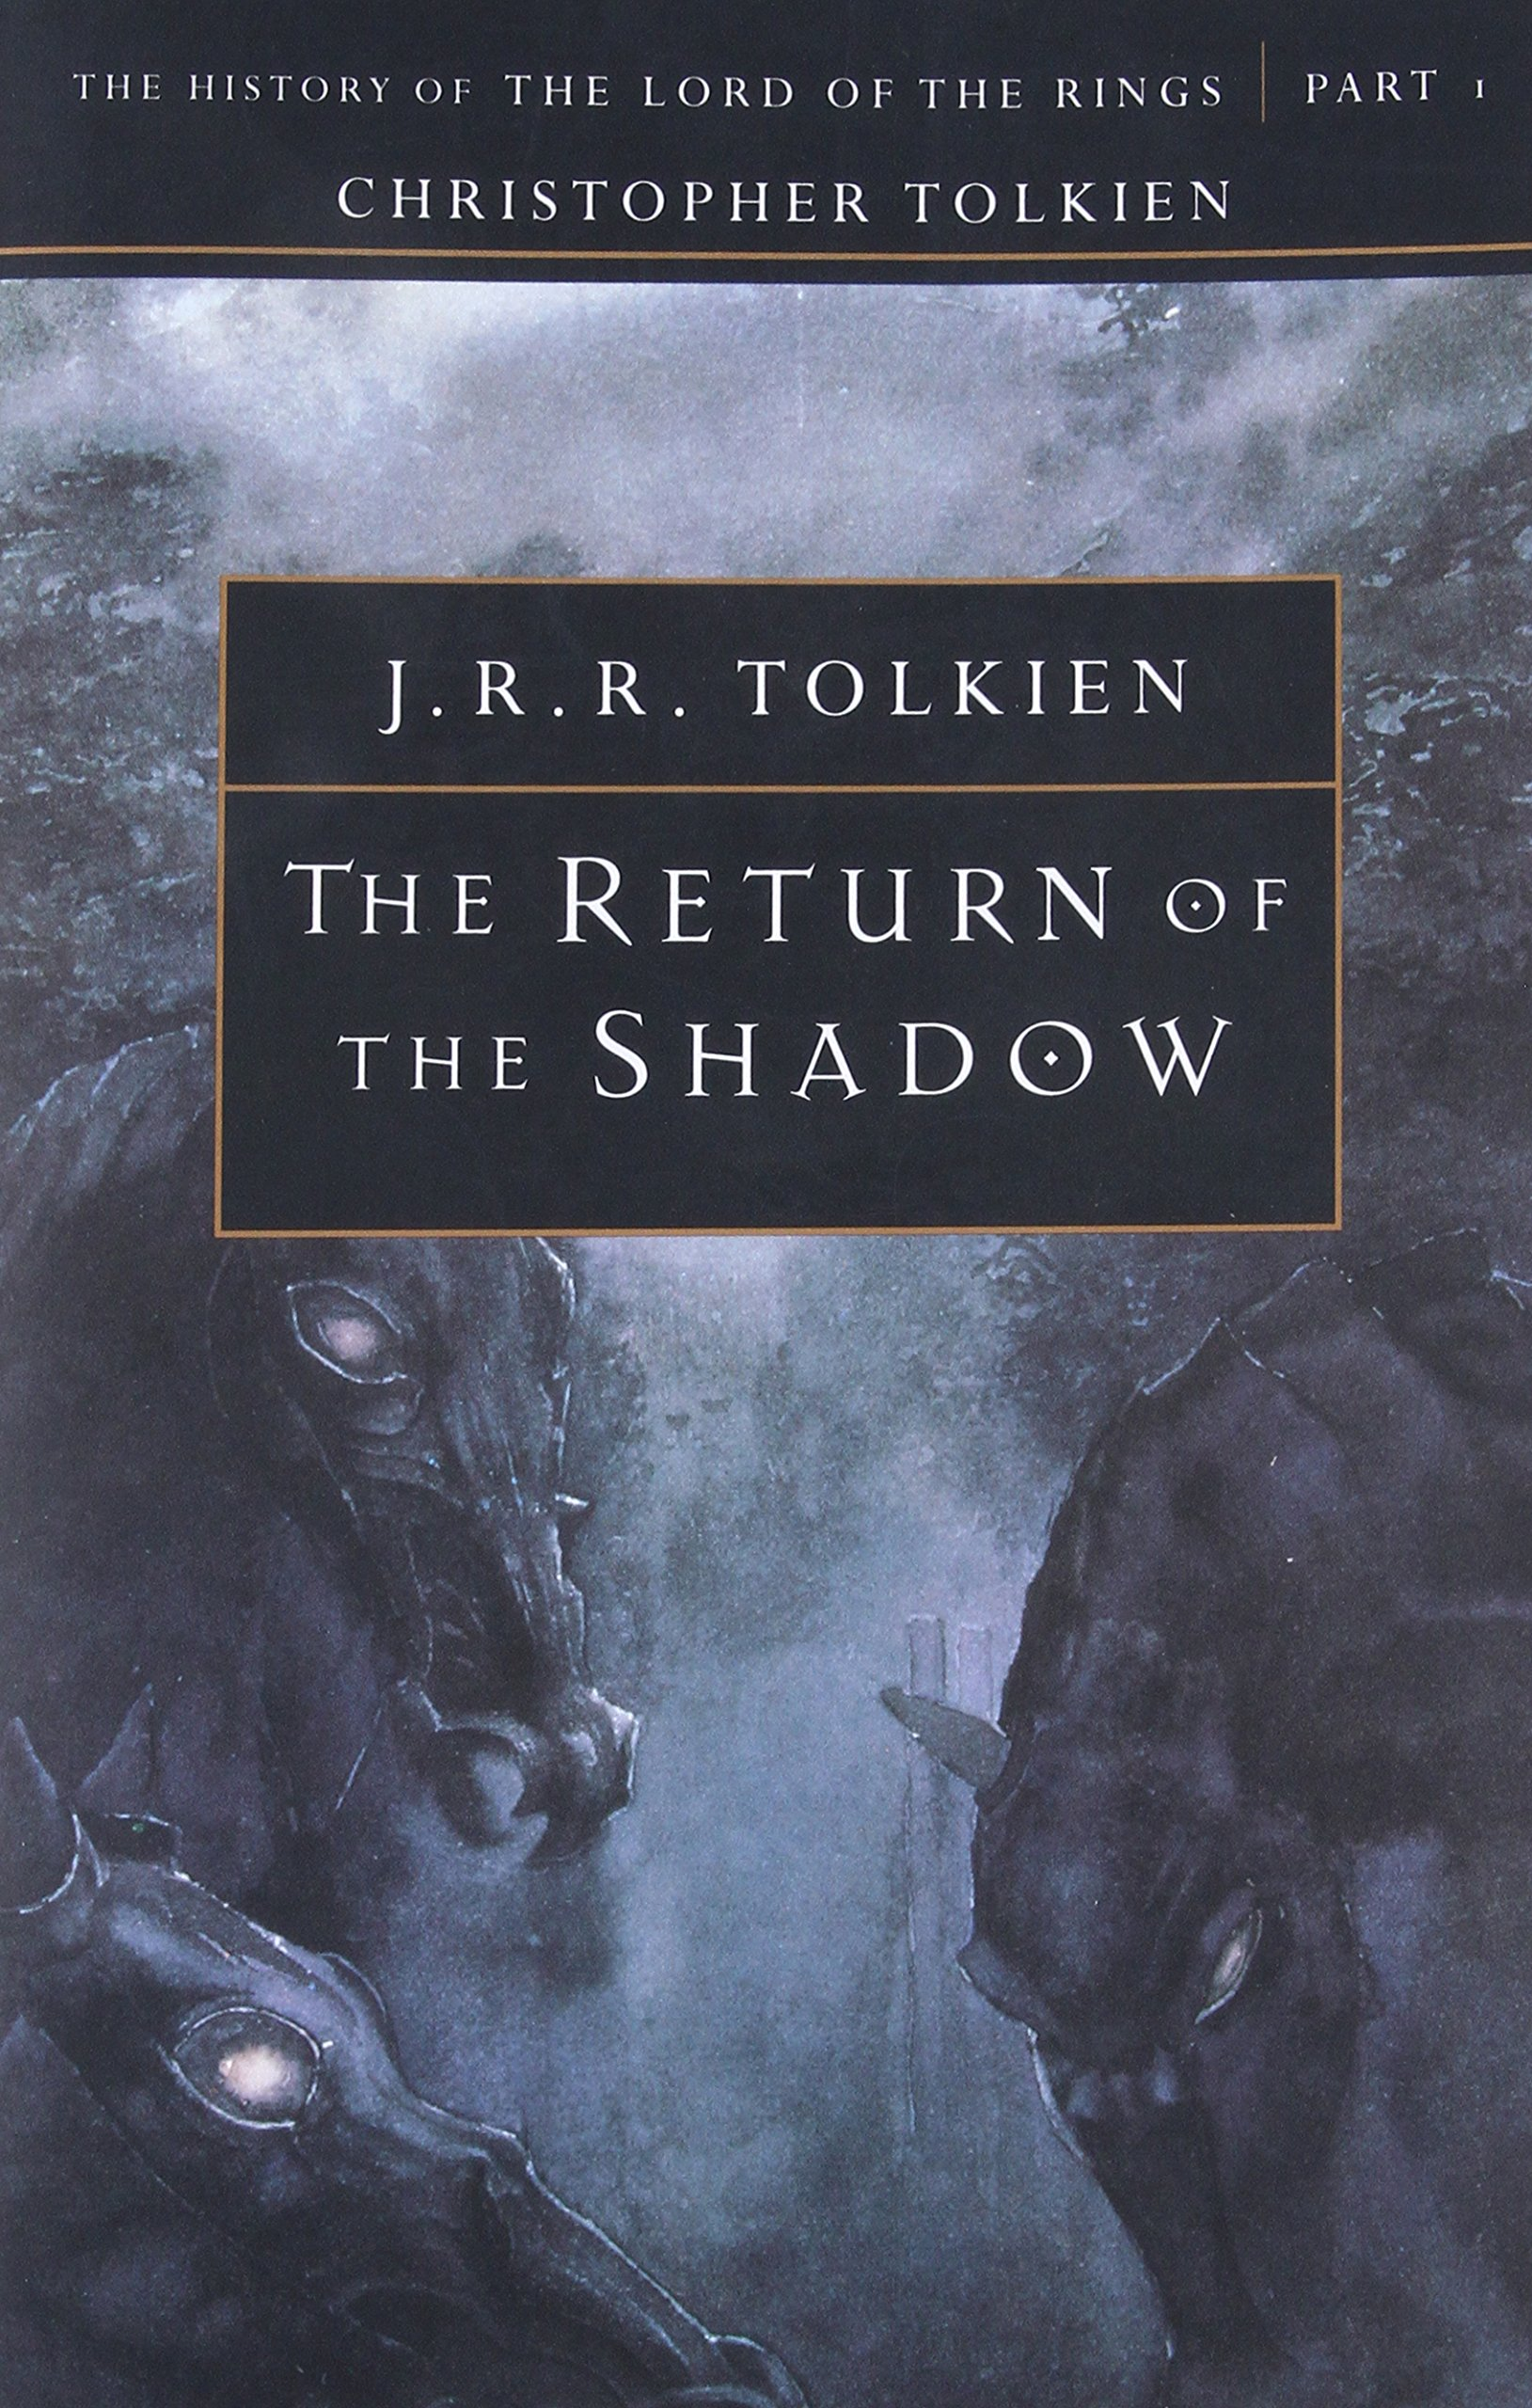 Lord Of The Rings Fellowship Of The Ring Epub